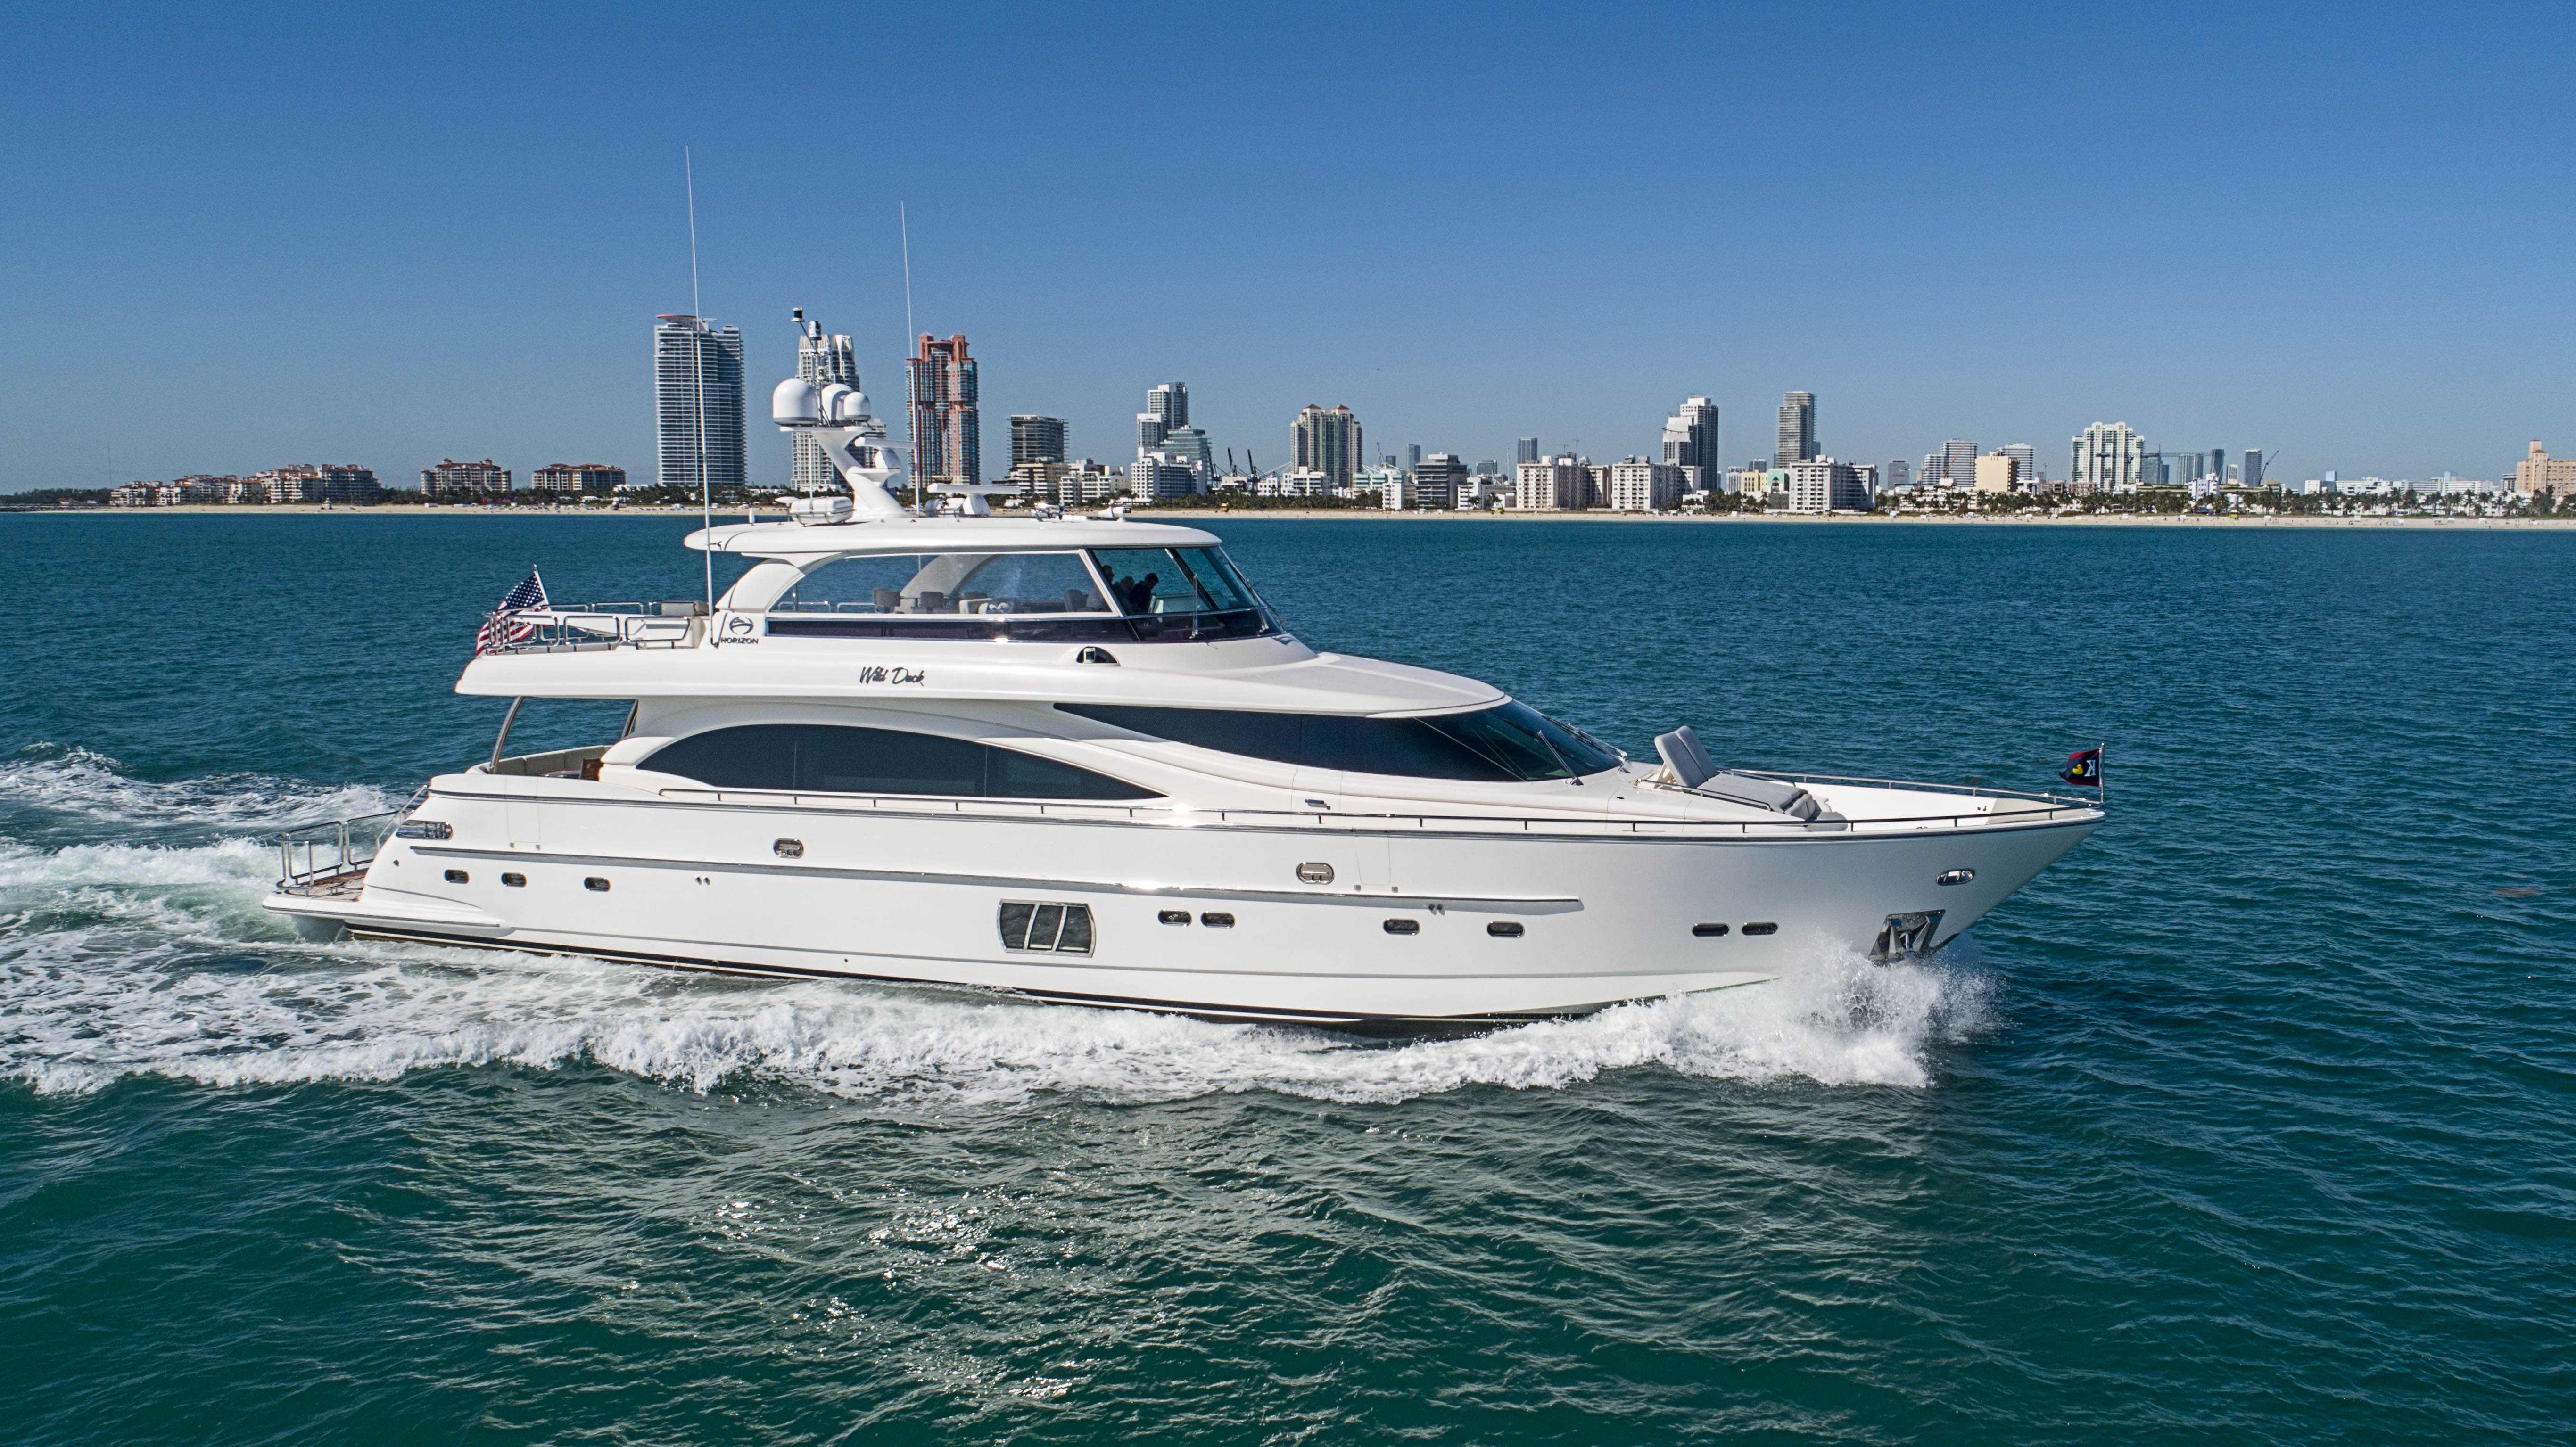 WILD DUCK specs with detailed specification and builder summary